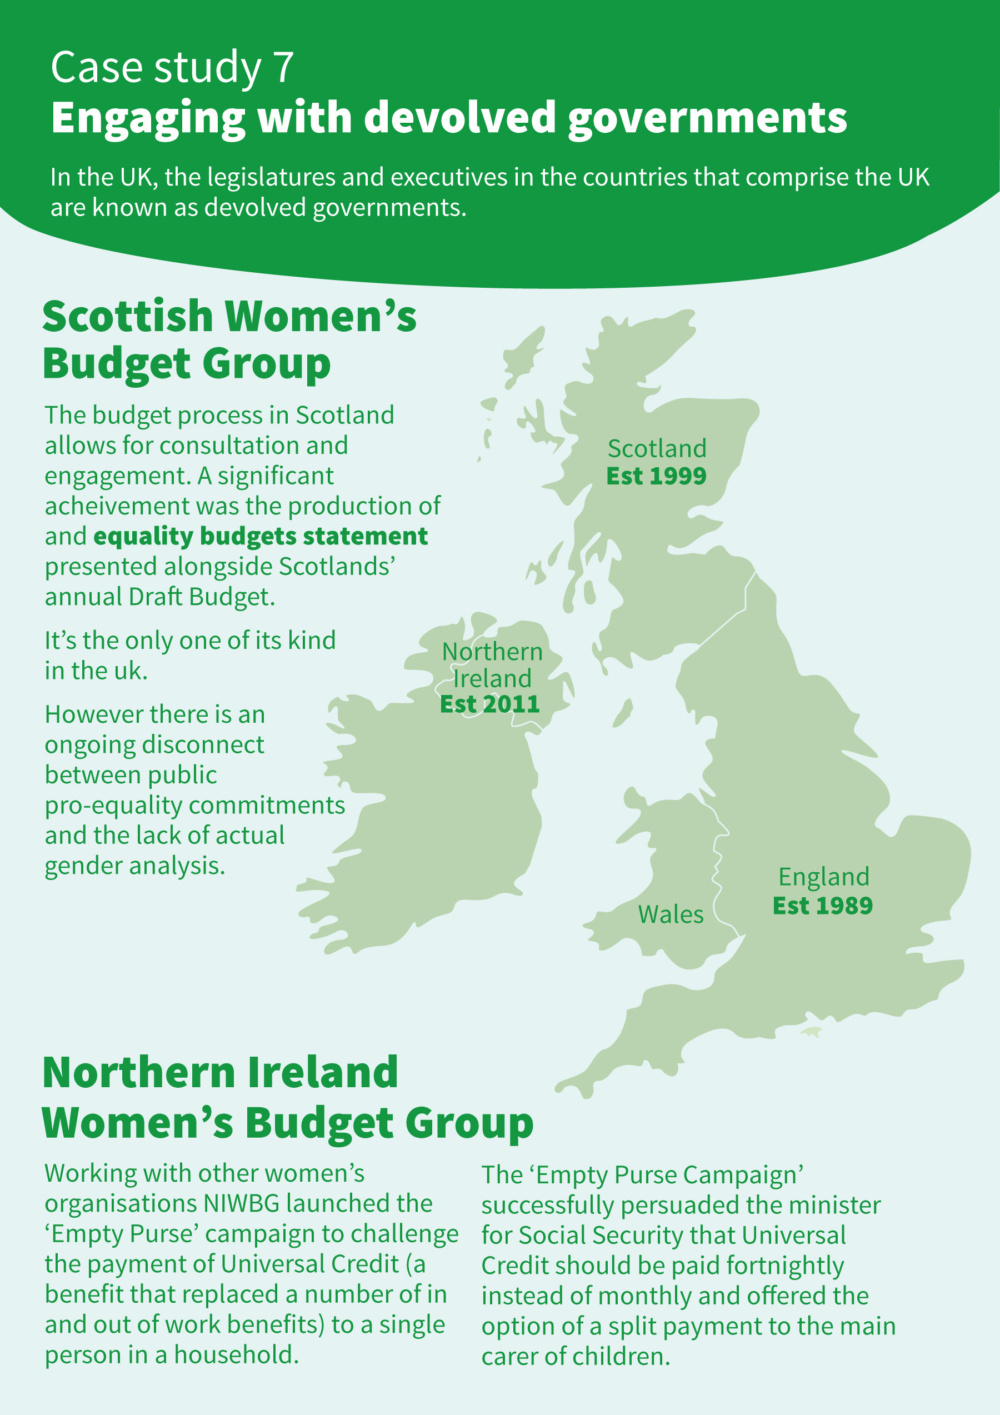 Infographic introducing the key issues around devolved government and gender responsive budgeting